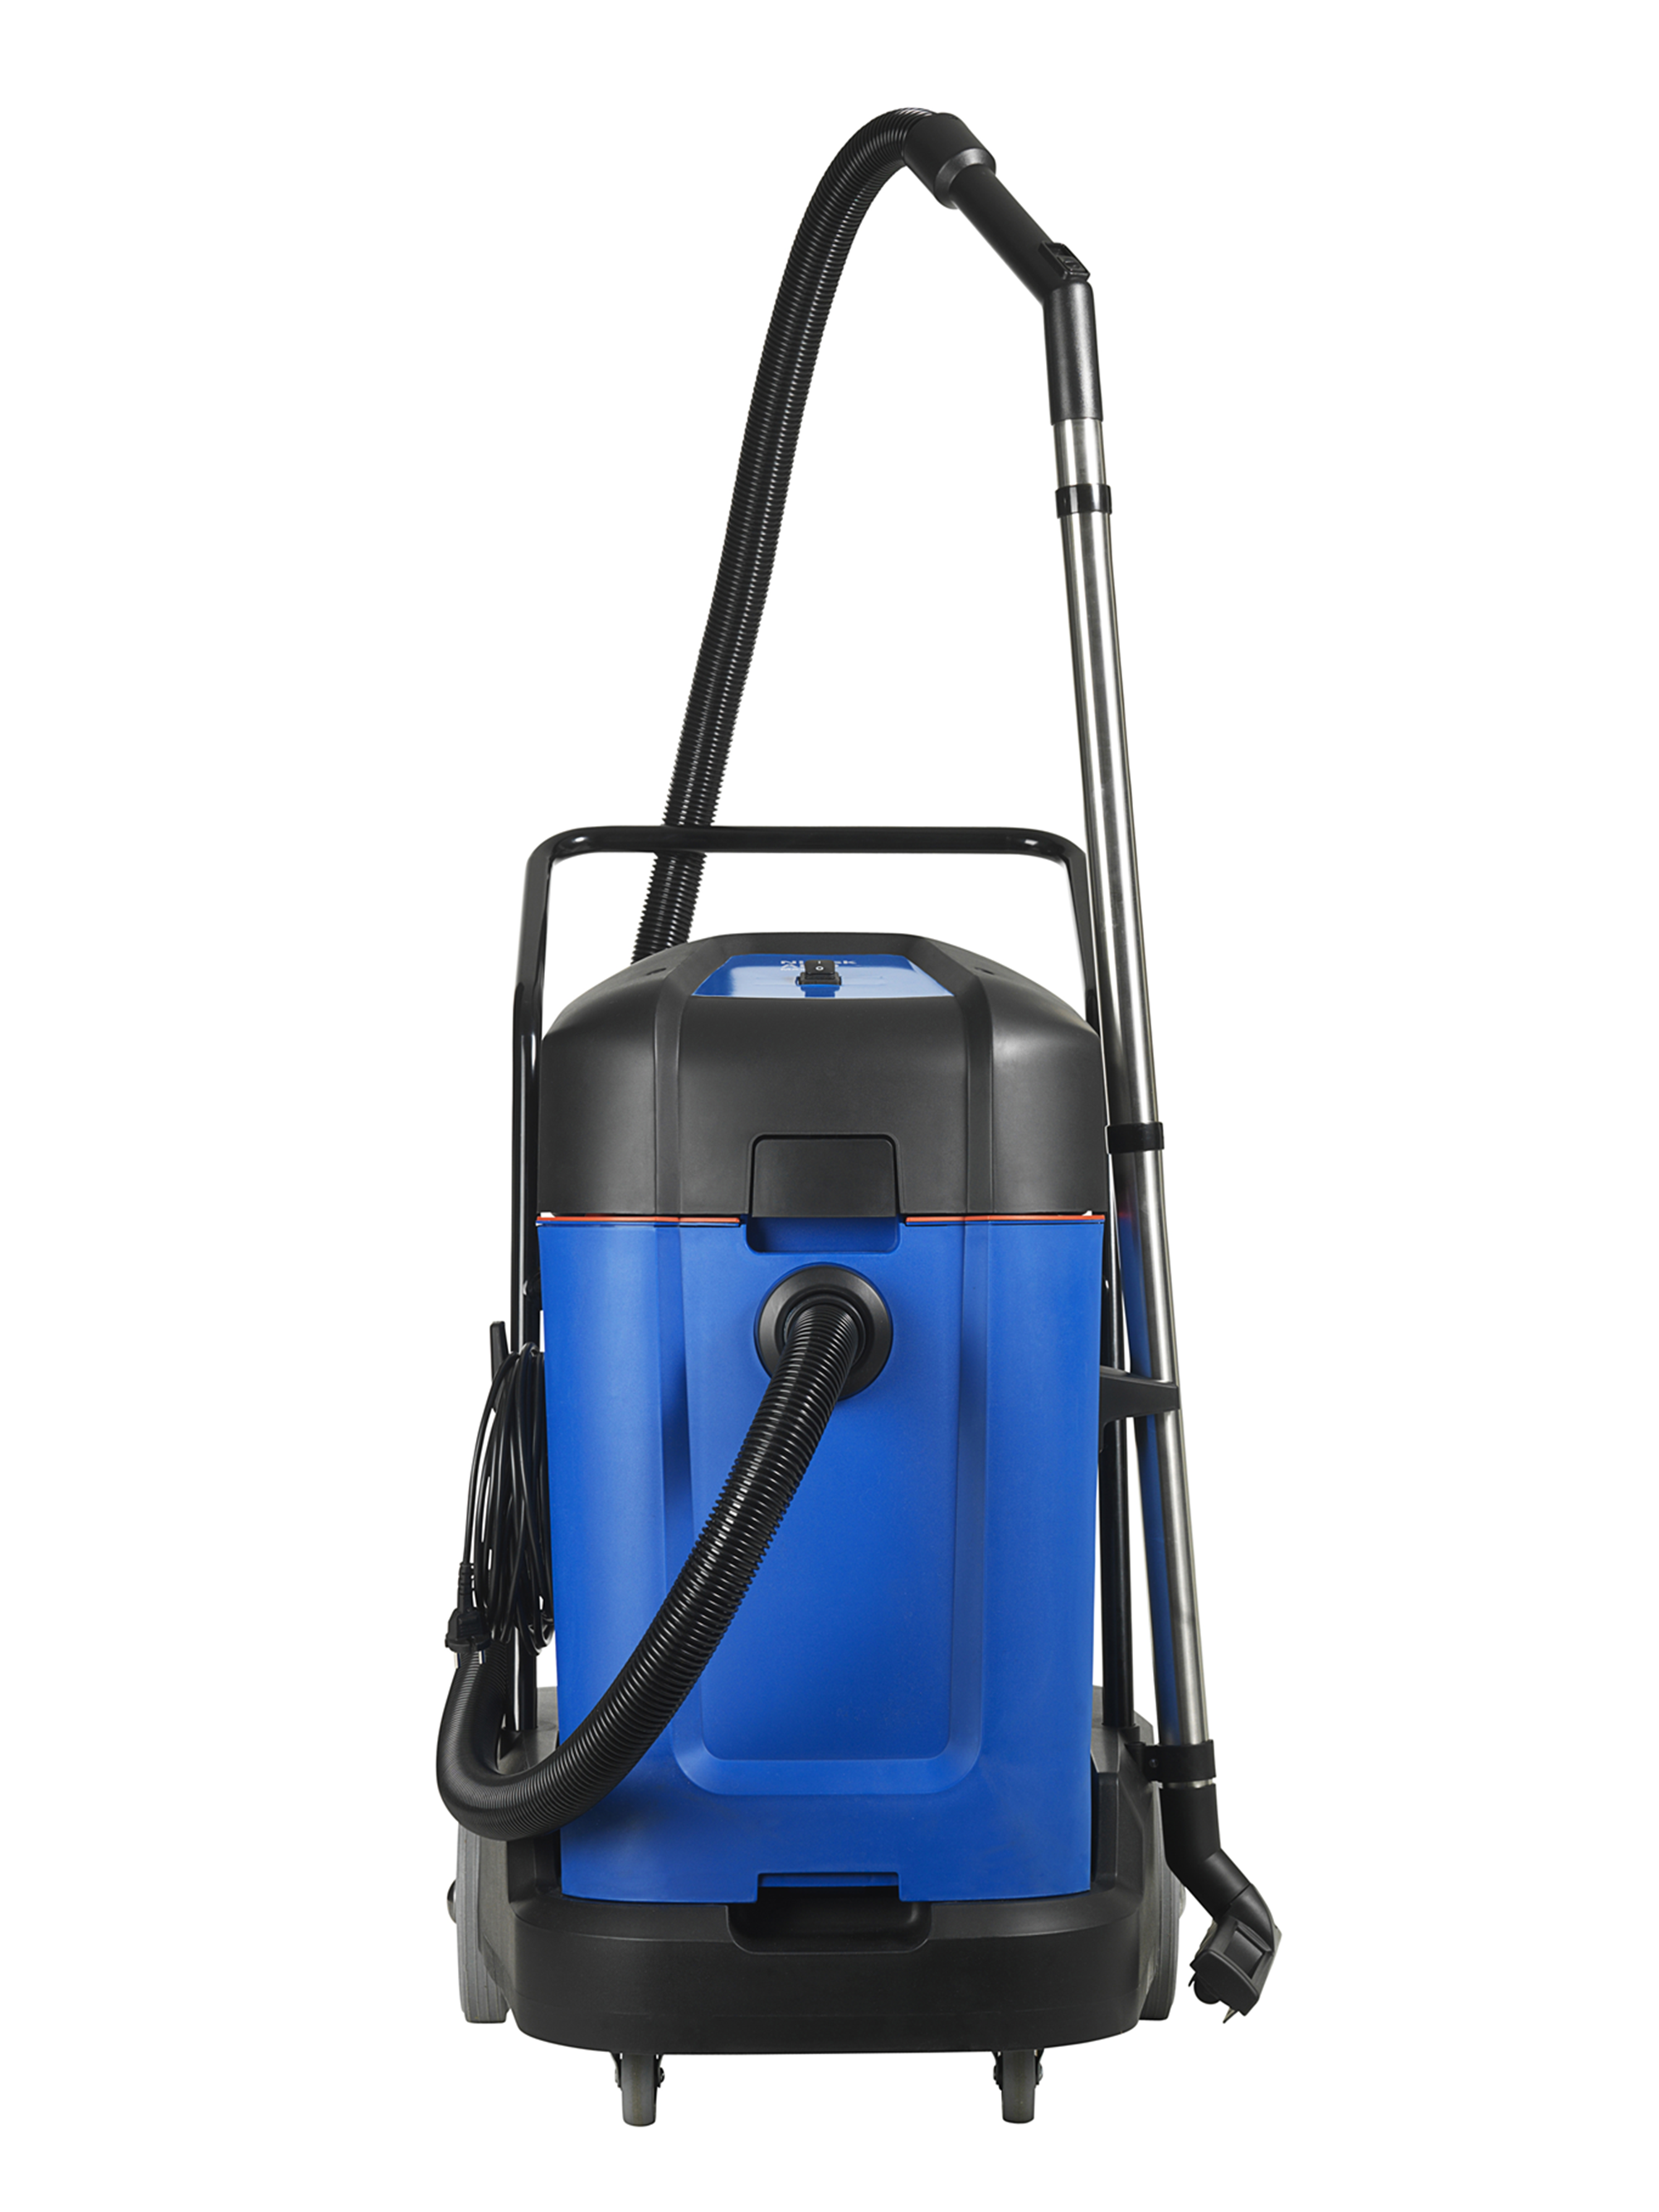 Product, Vacuum cleaners, Commercial vacuum cleaners, Wet and dry vacuum cleaners, Nilfisk, MAXXI II 55-2 WD 220-240V/50-60 EU